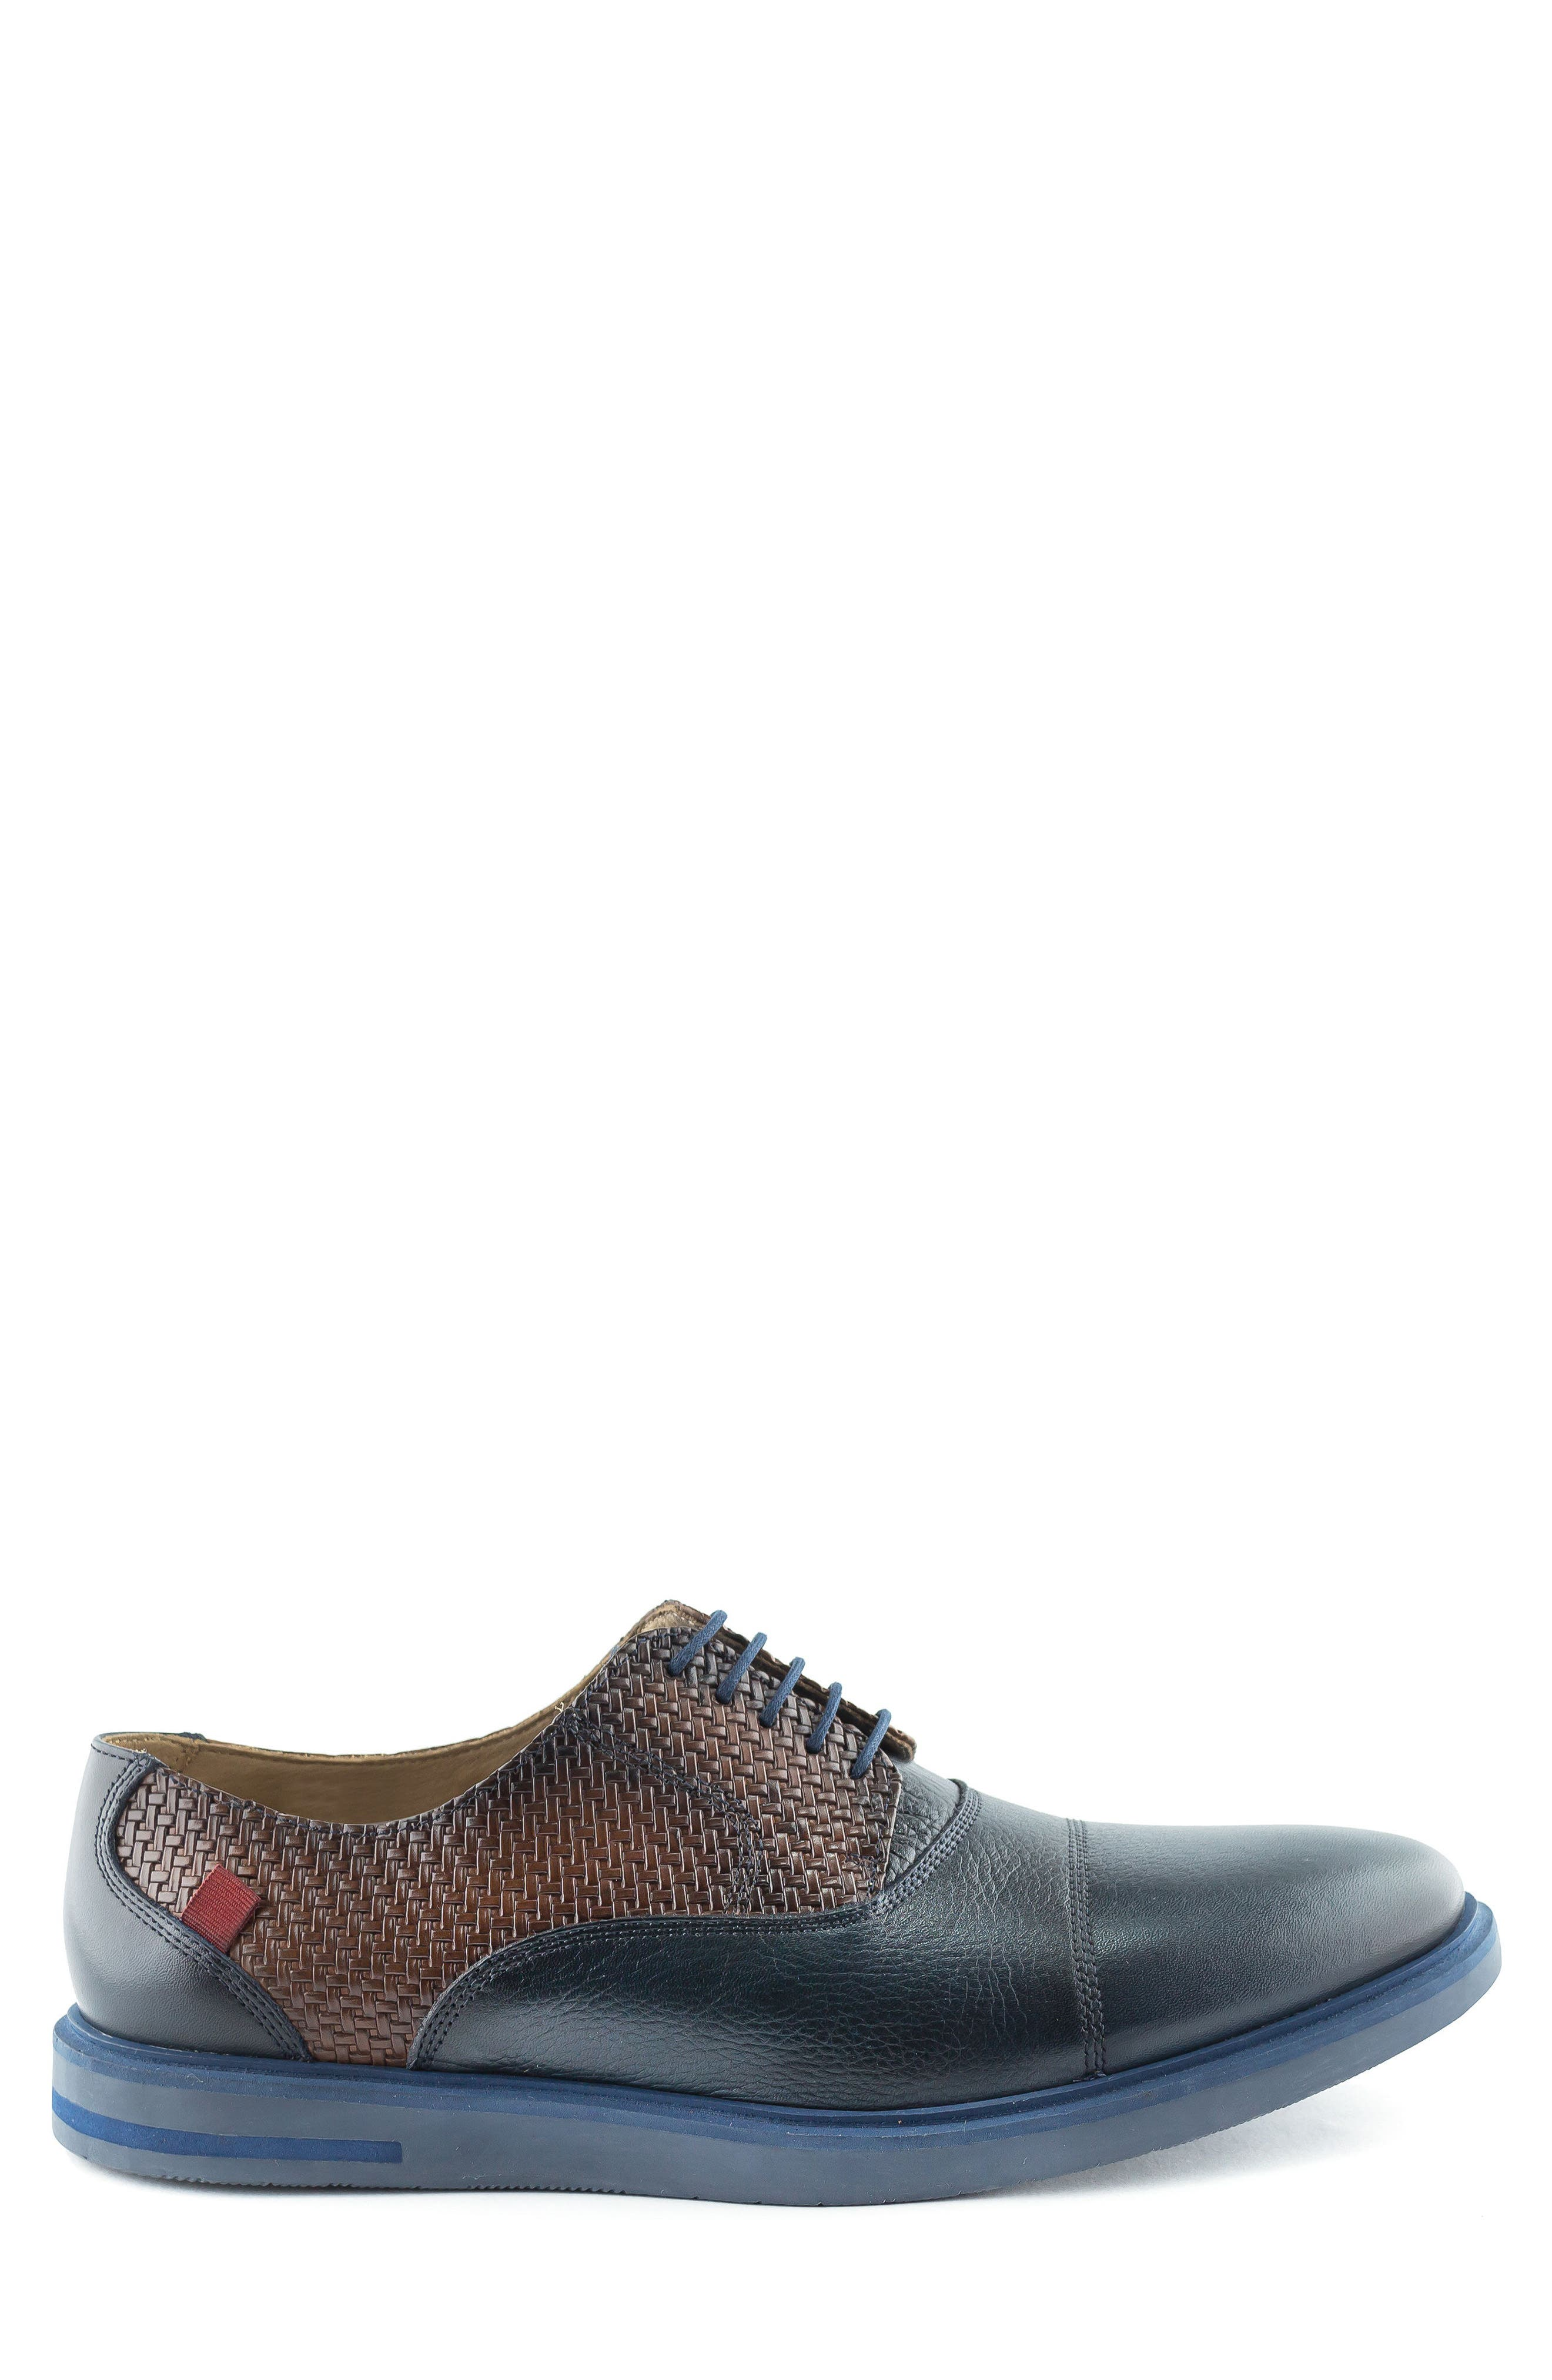 Manhattan Cap Toe Oxford,                             Alternate thumbnail 3, color,                             Navy Leather